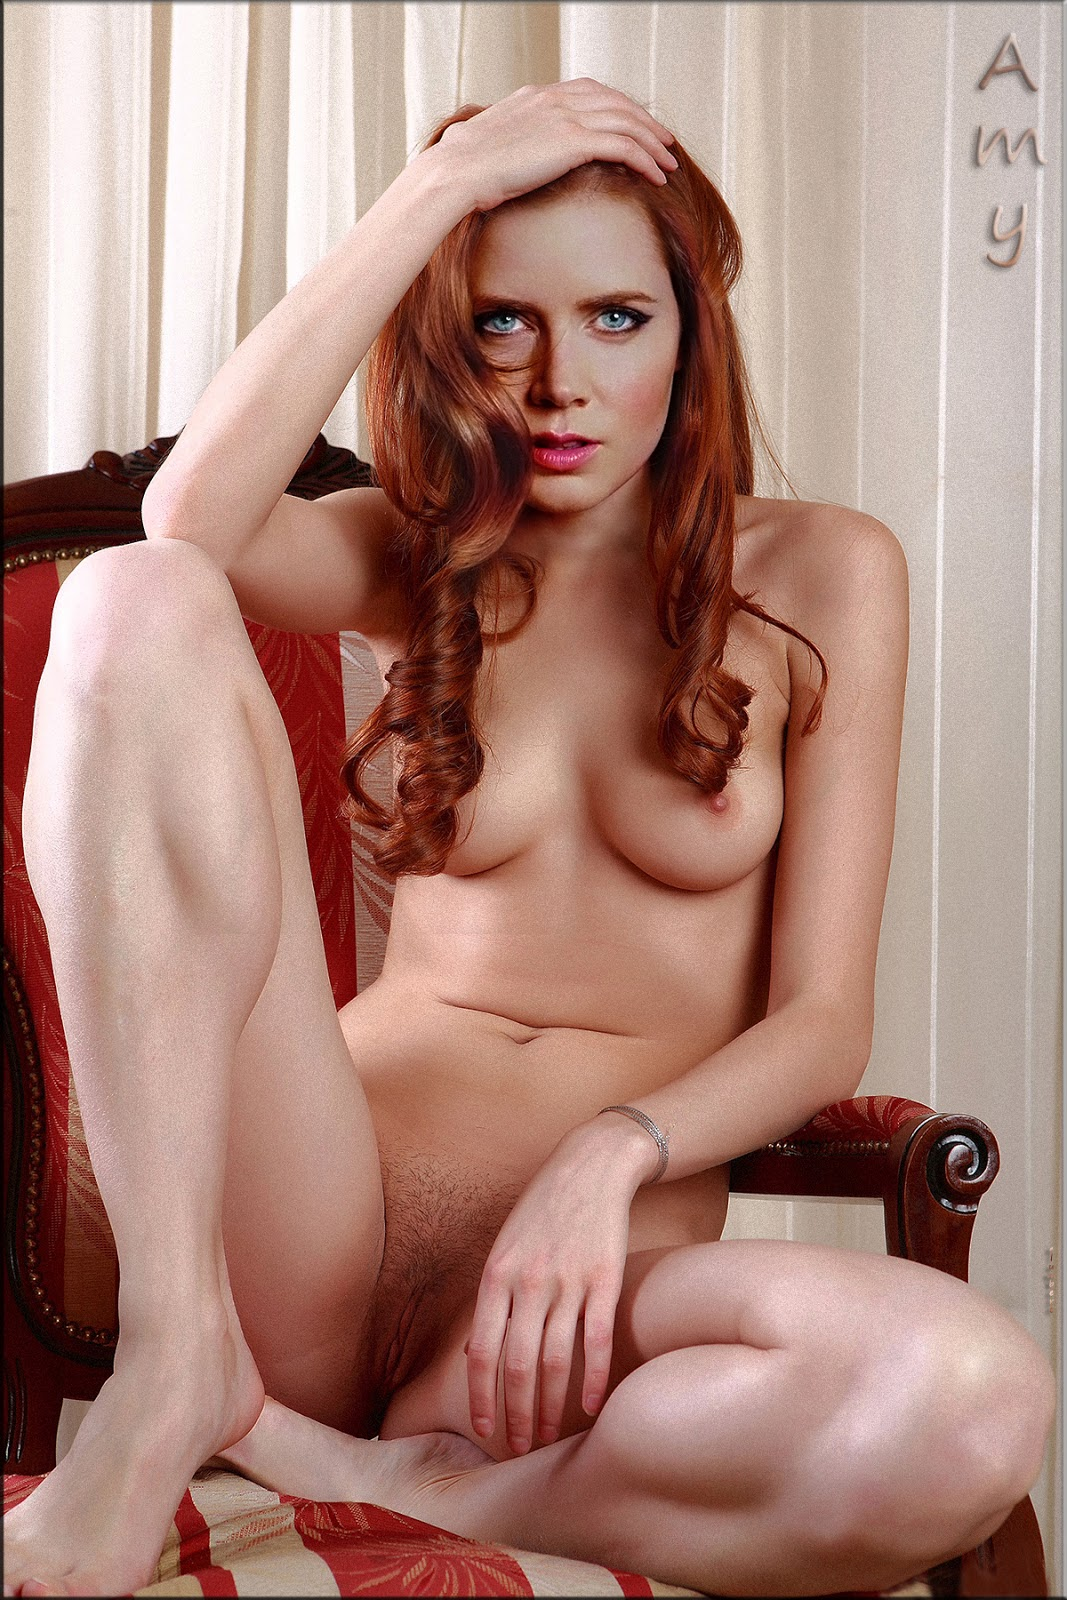 Fini Lo Amy Adams Nude Showing Her Boobs Trimmed Pussy Fake